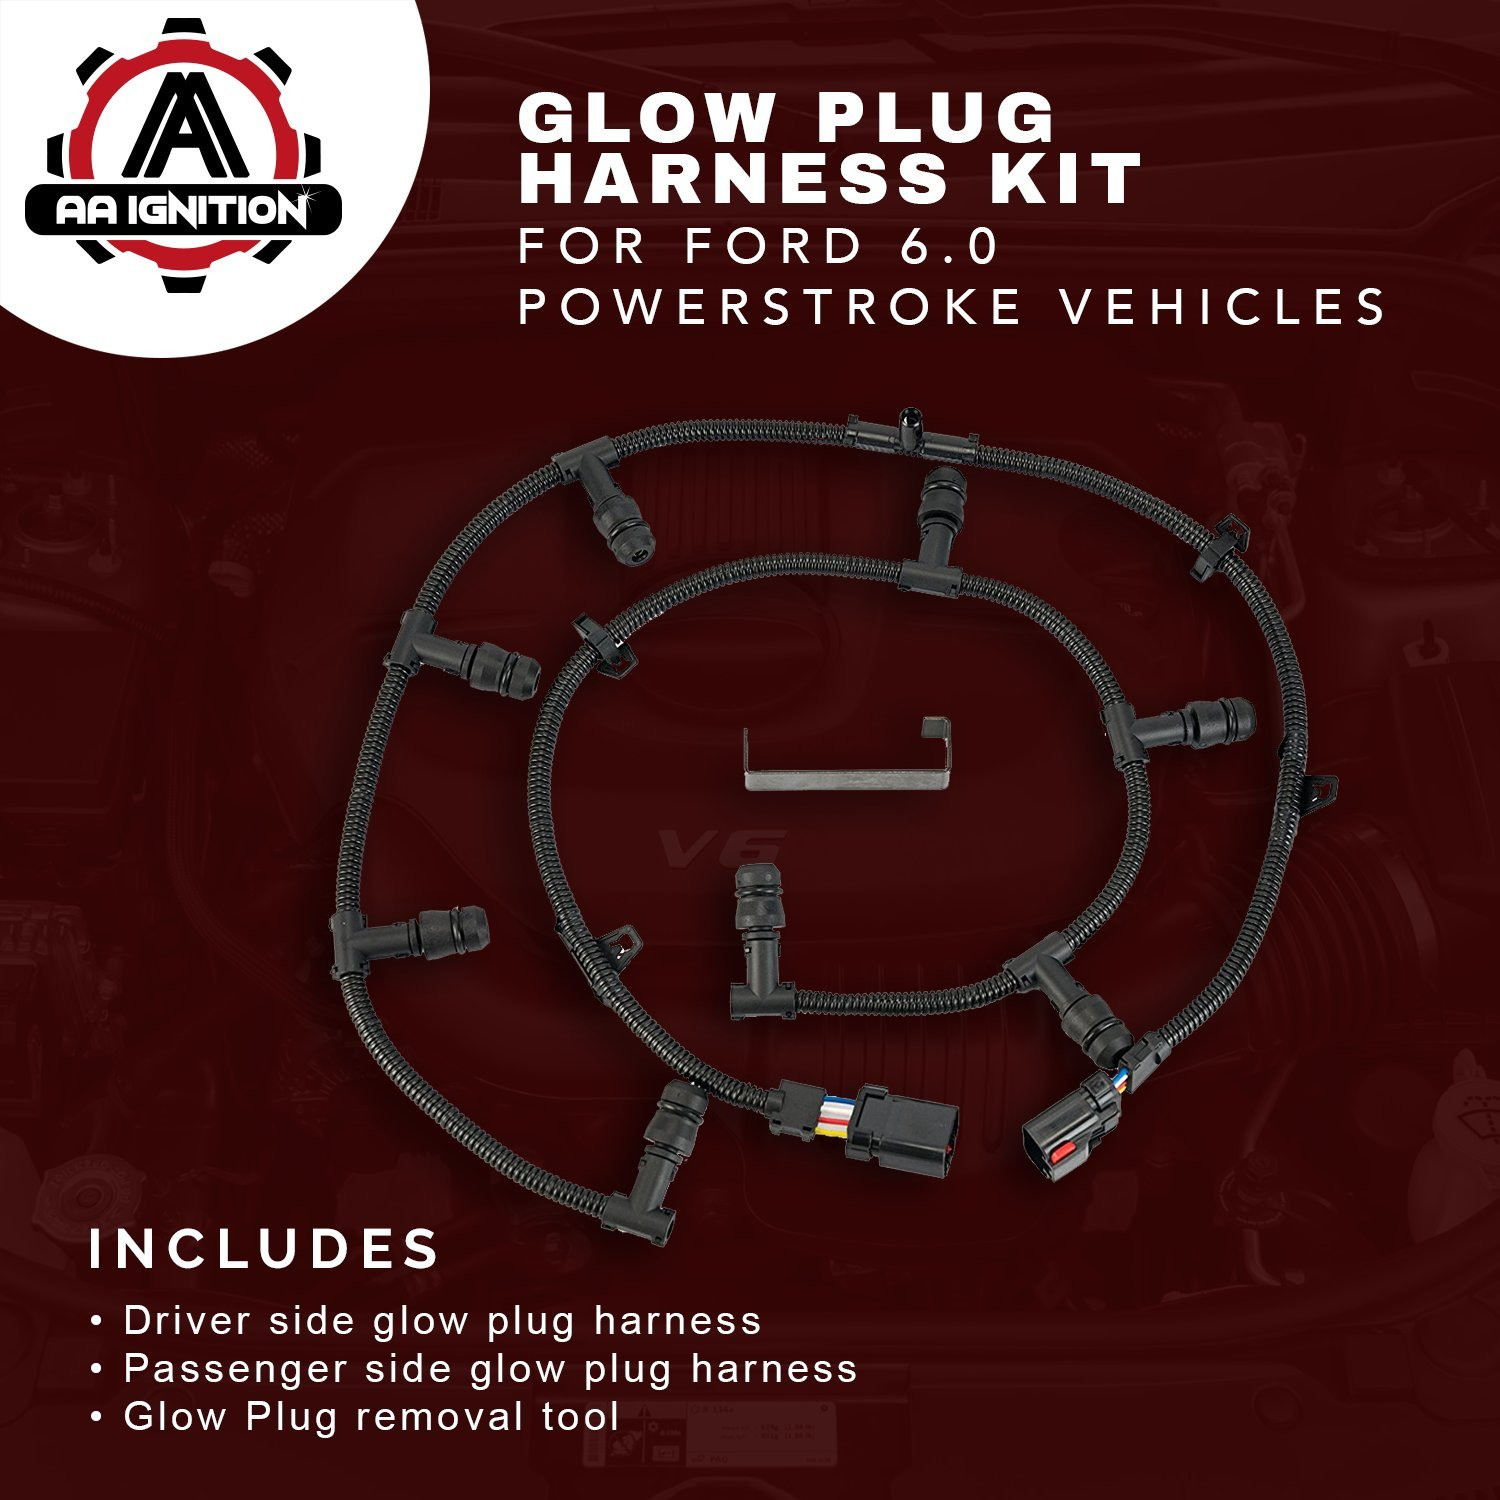 Ford Powerstroke 60 Glow Plug Harness Kit Compatible Replacing Wiring Cost Replacement Includes Right Left Removal Tool Fits F250 Super Duty F350